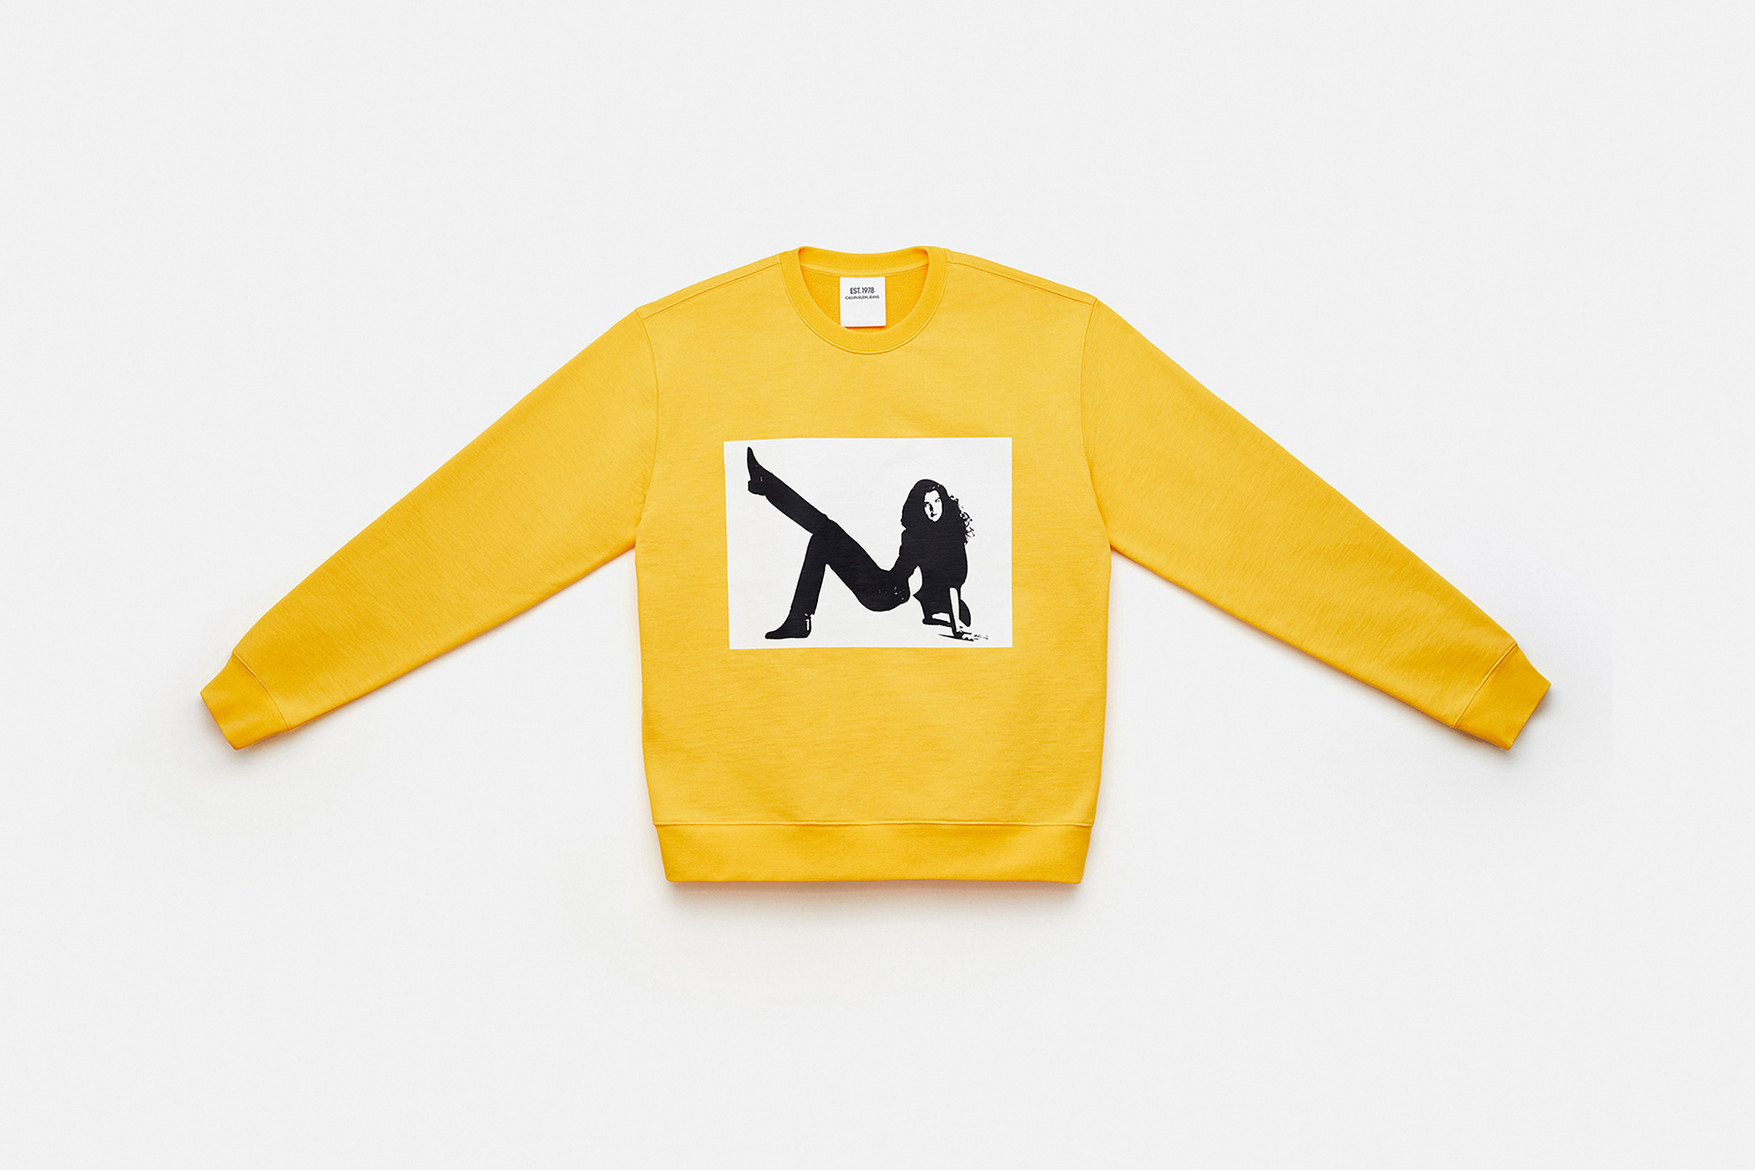 https_%2F%2Fhypebeast.com%2Fimage%2F2018%2F07%2Fcalvin-klein-jeans-Est-1978-delivery-1-1.jpg